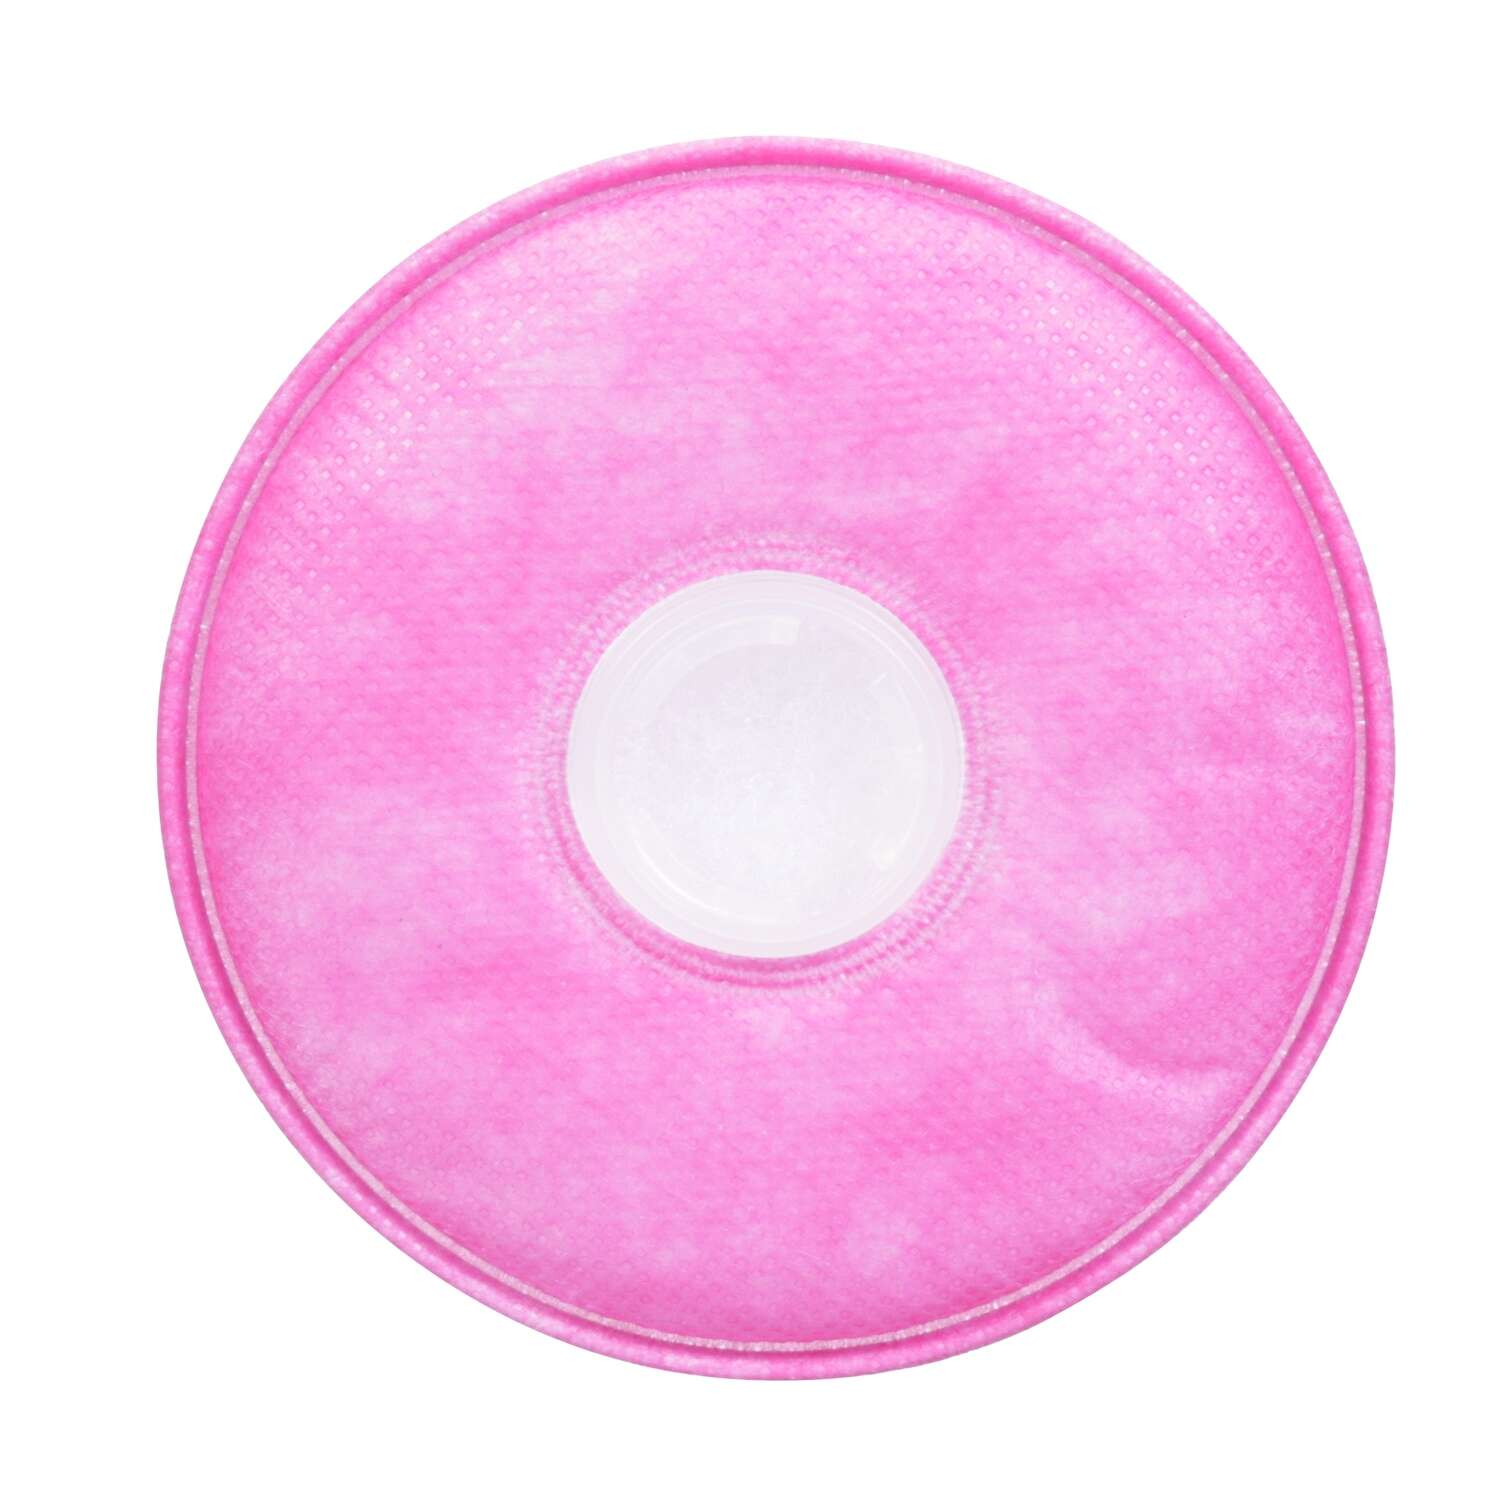 3M  Sanding and Lead Paint Removal  Respirator Mask Replacement Filter  Pink  4 pk